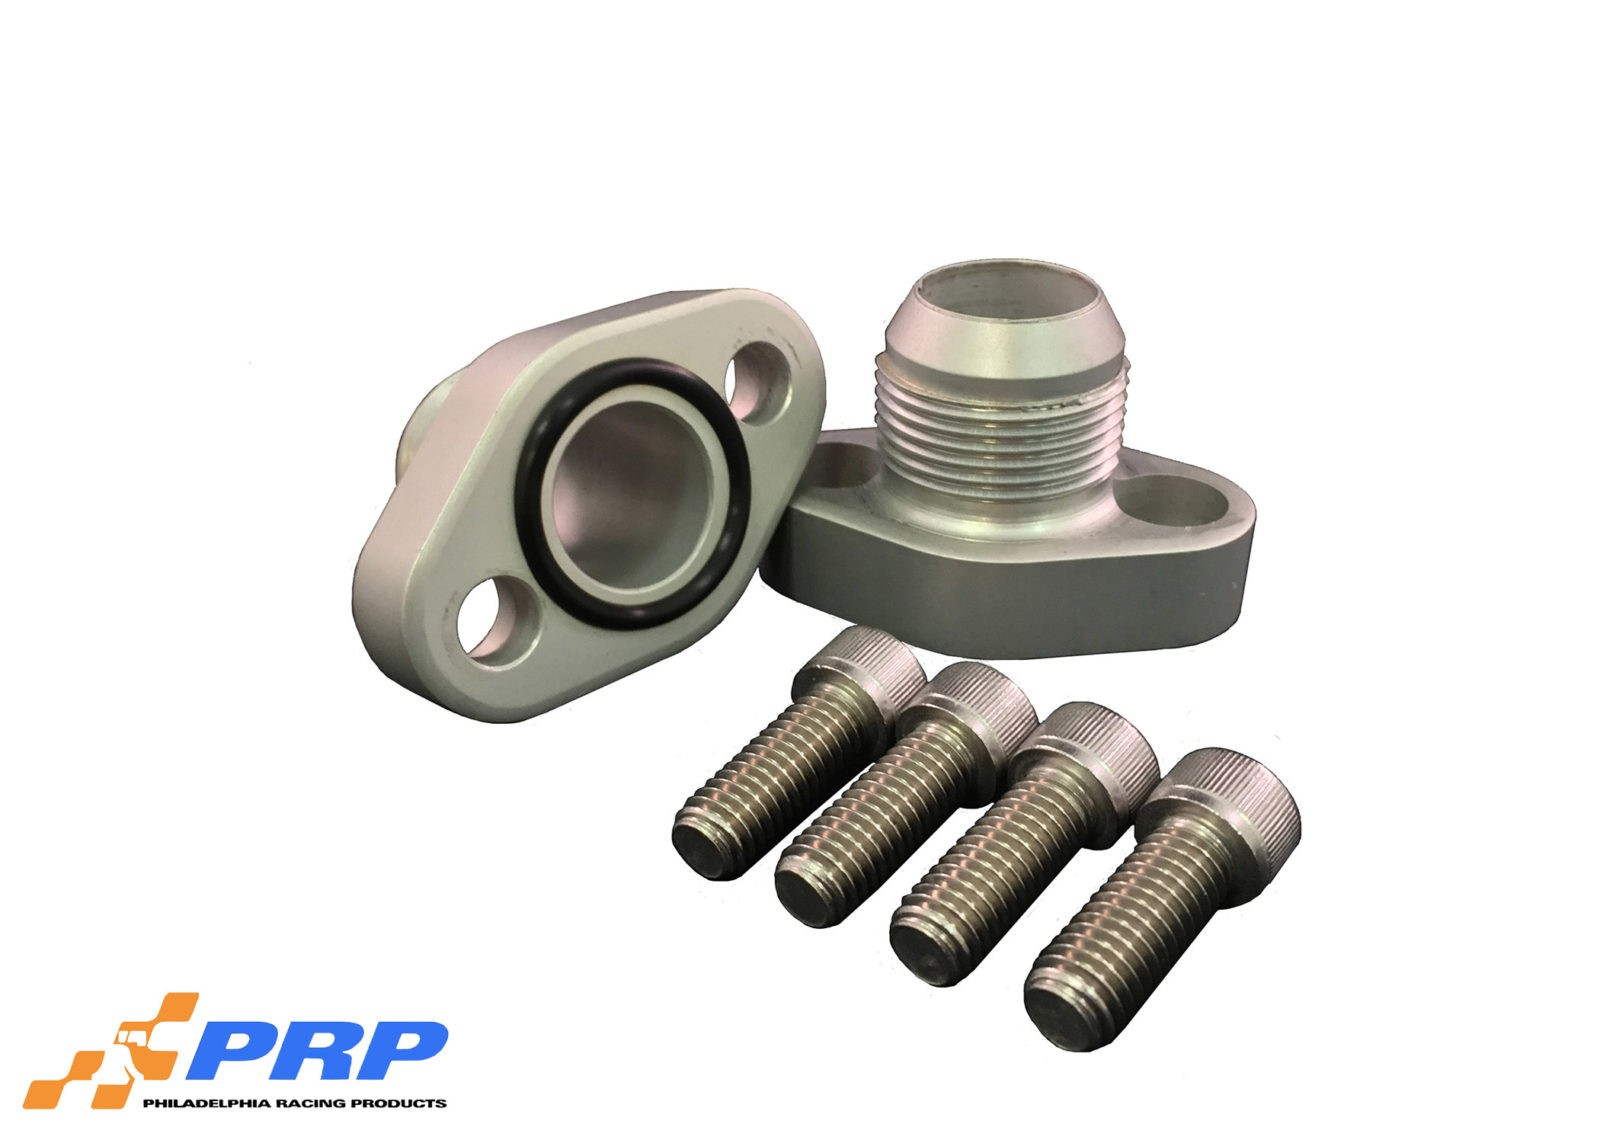 Clear SBC 16AN Block Adapters made by PRP Racing Products